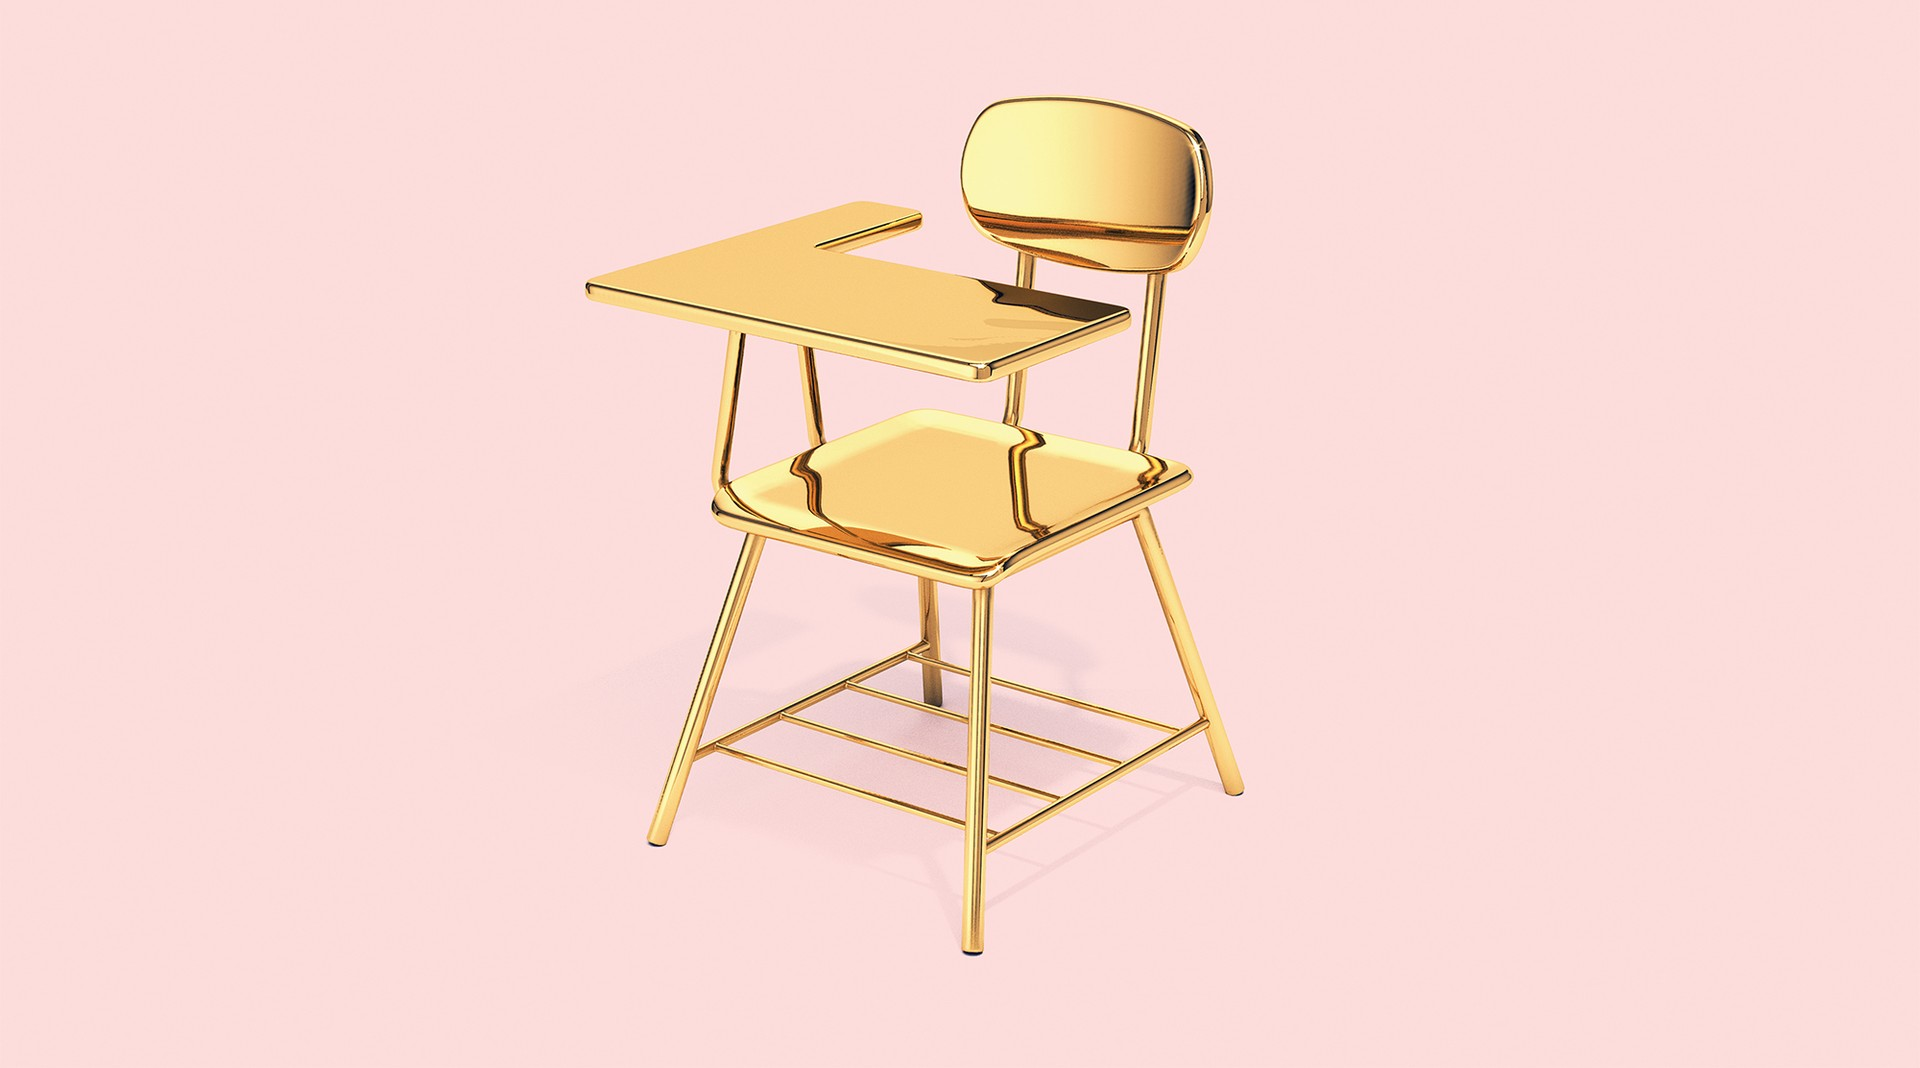 illustration: a solid gold school desk on a pink background